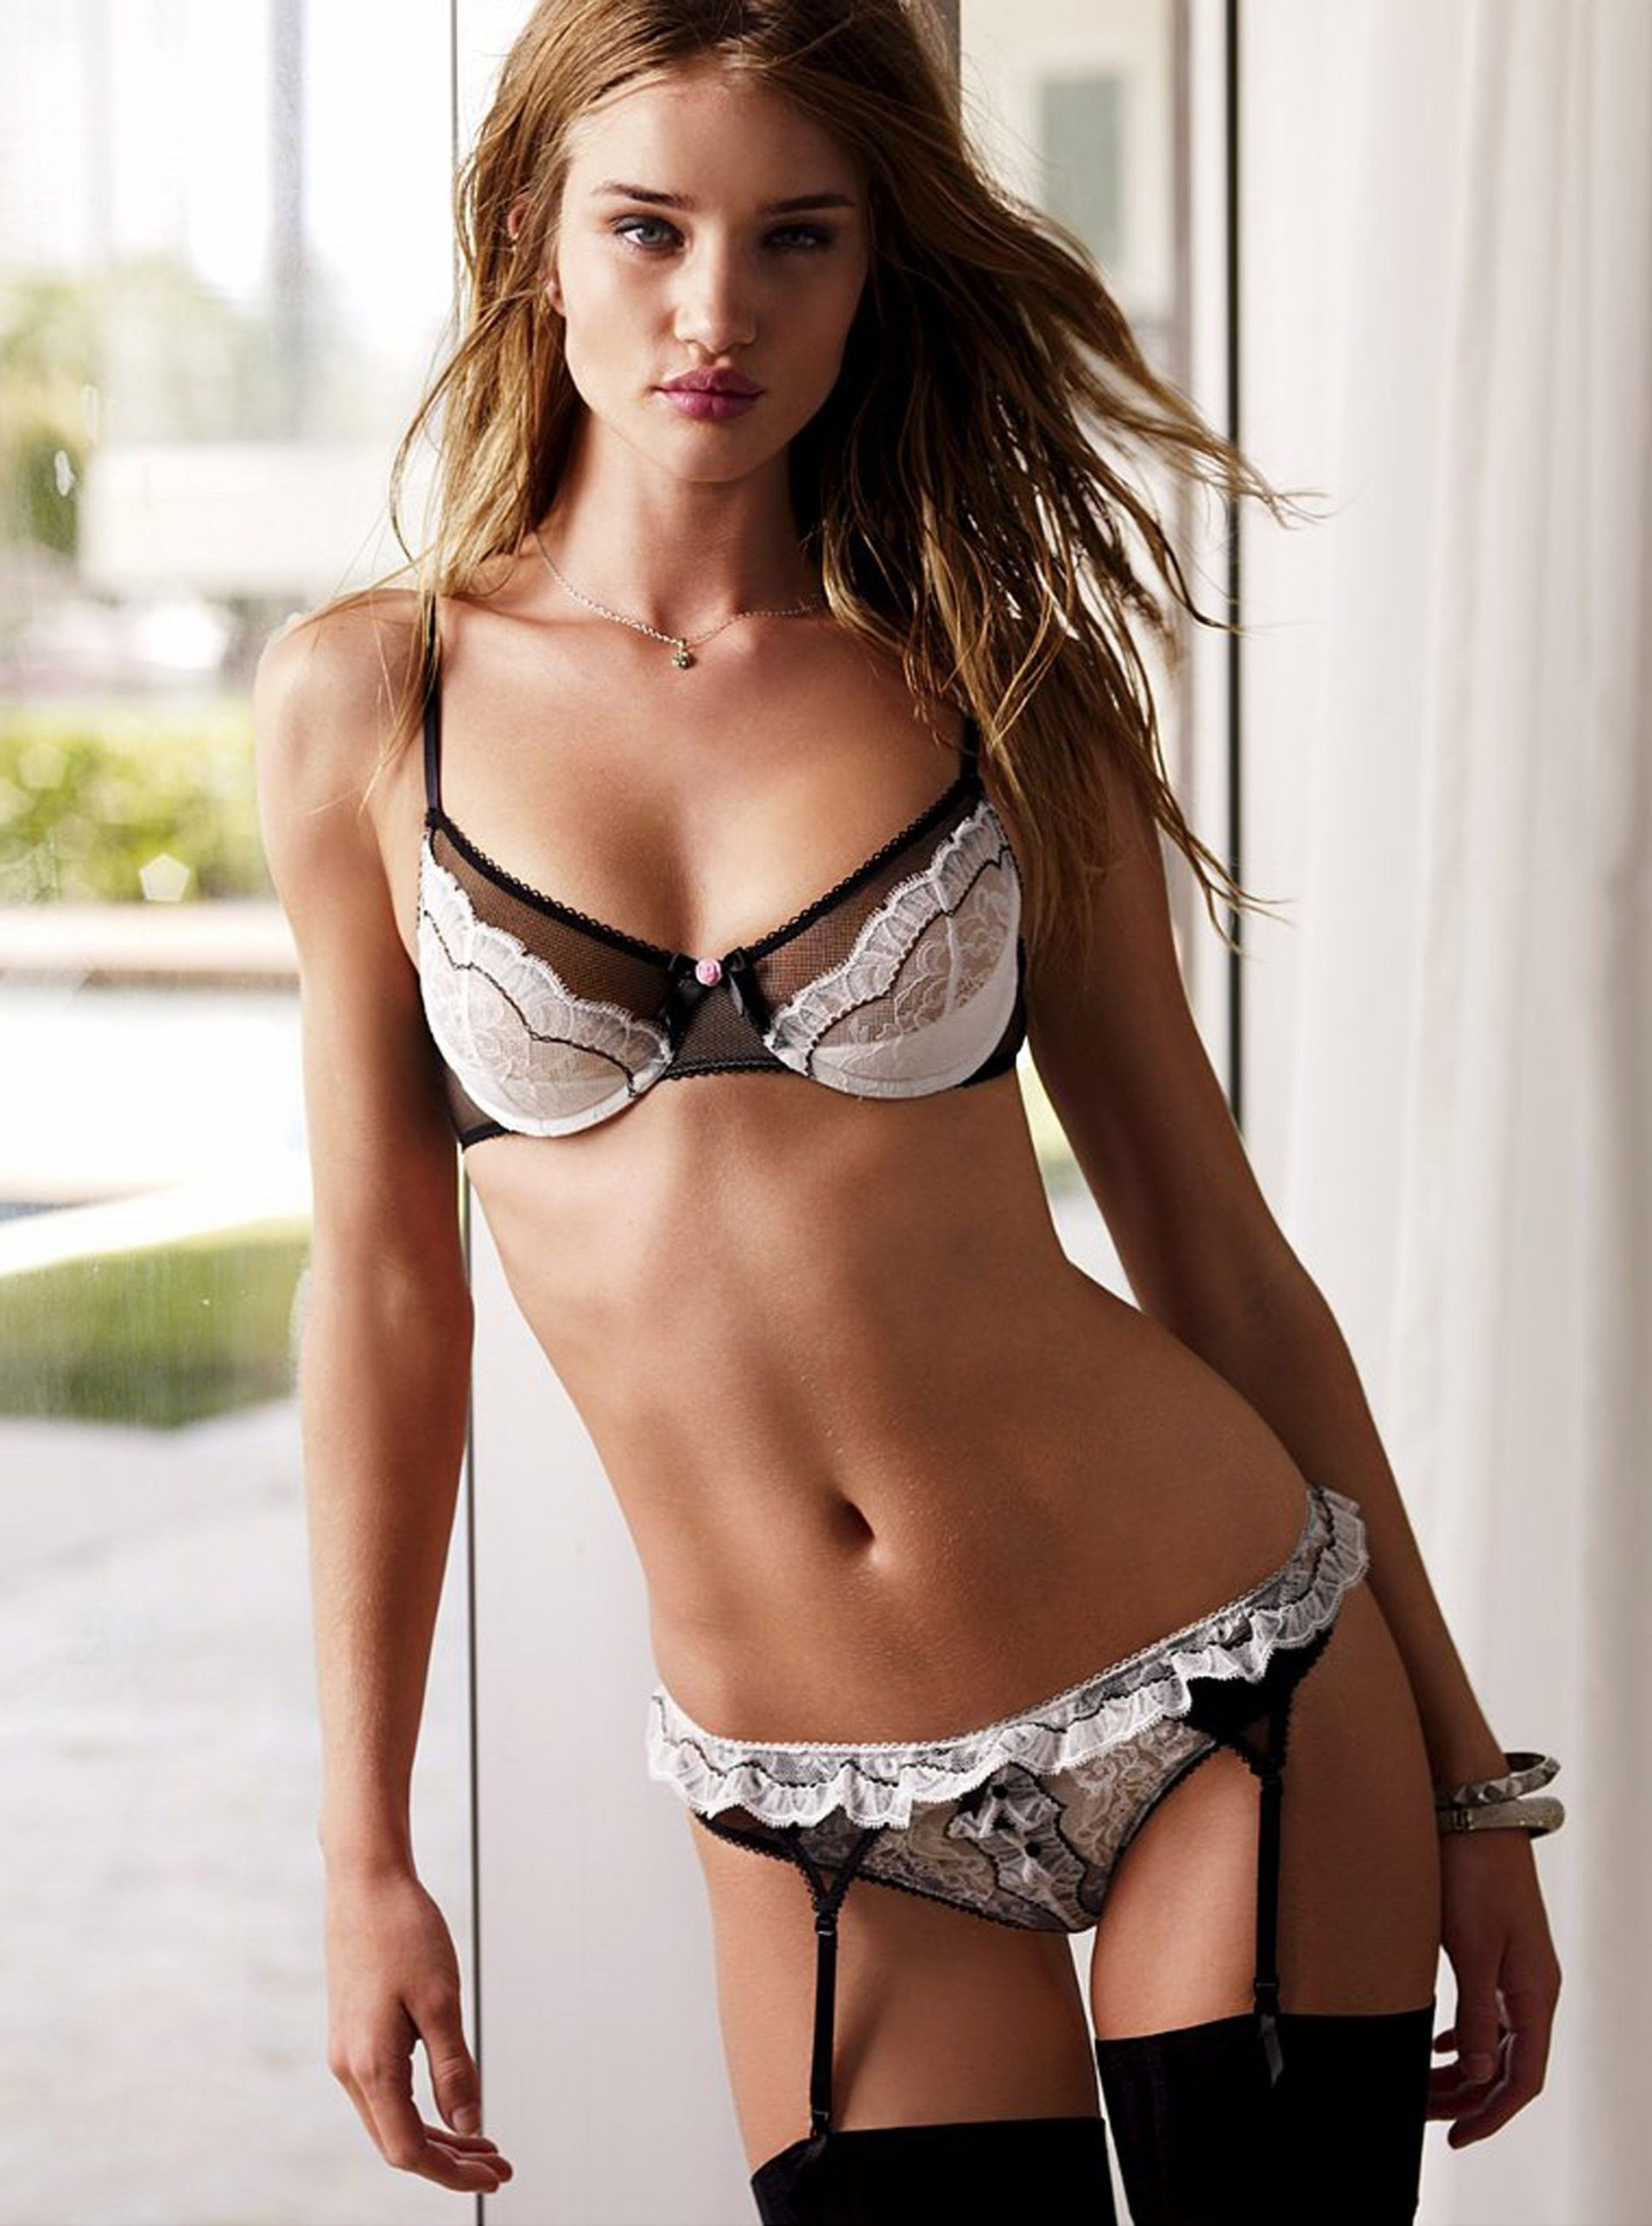 Rosie Huntington Whiteley Hot Underwear Pic scaled - Rosie Huntington Whiteley Hot Underwear Pic